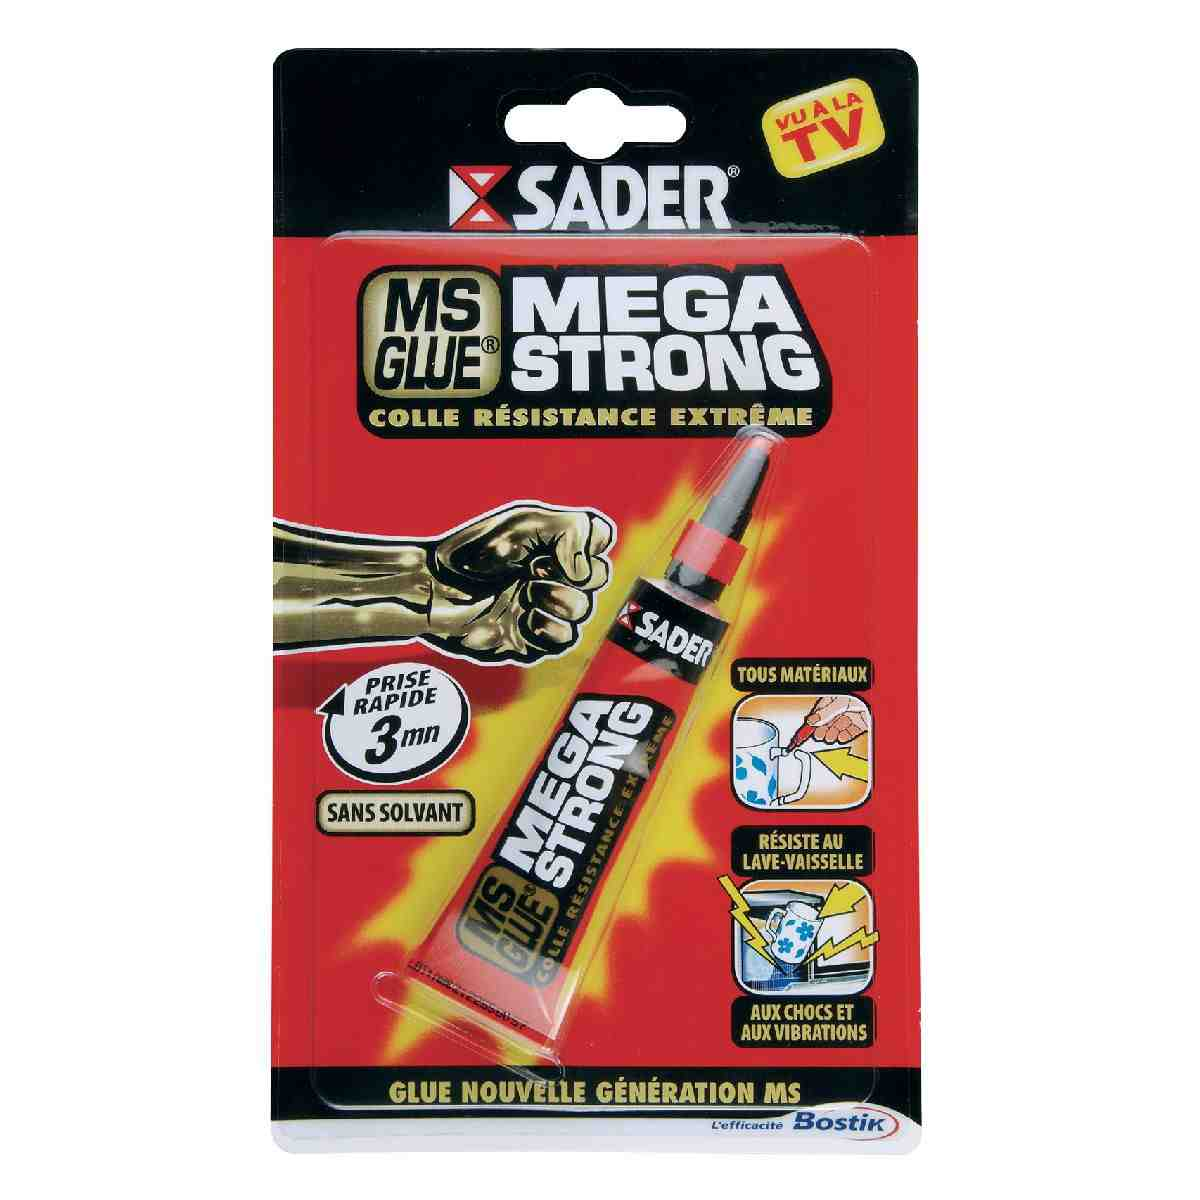 Colle MS Glue Méga Strong Sader